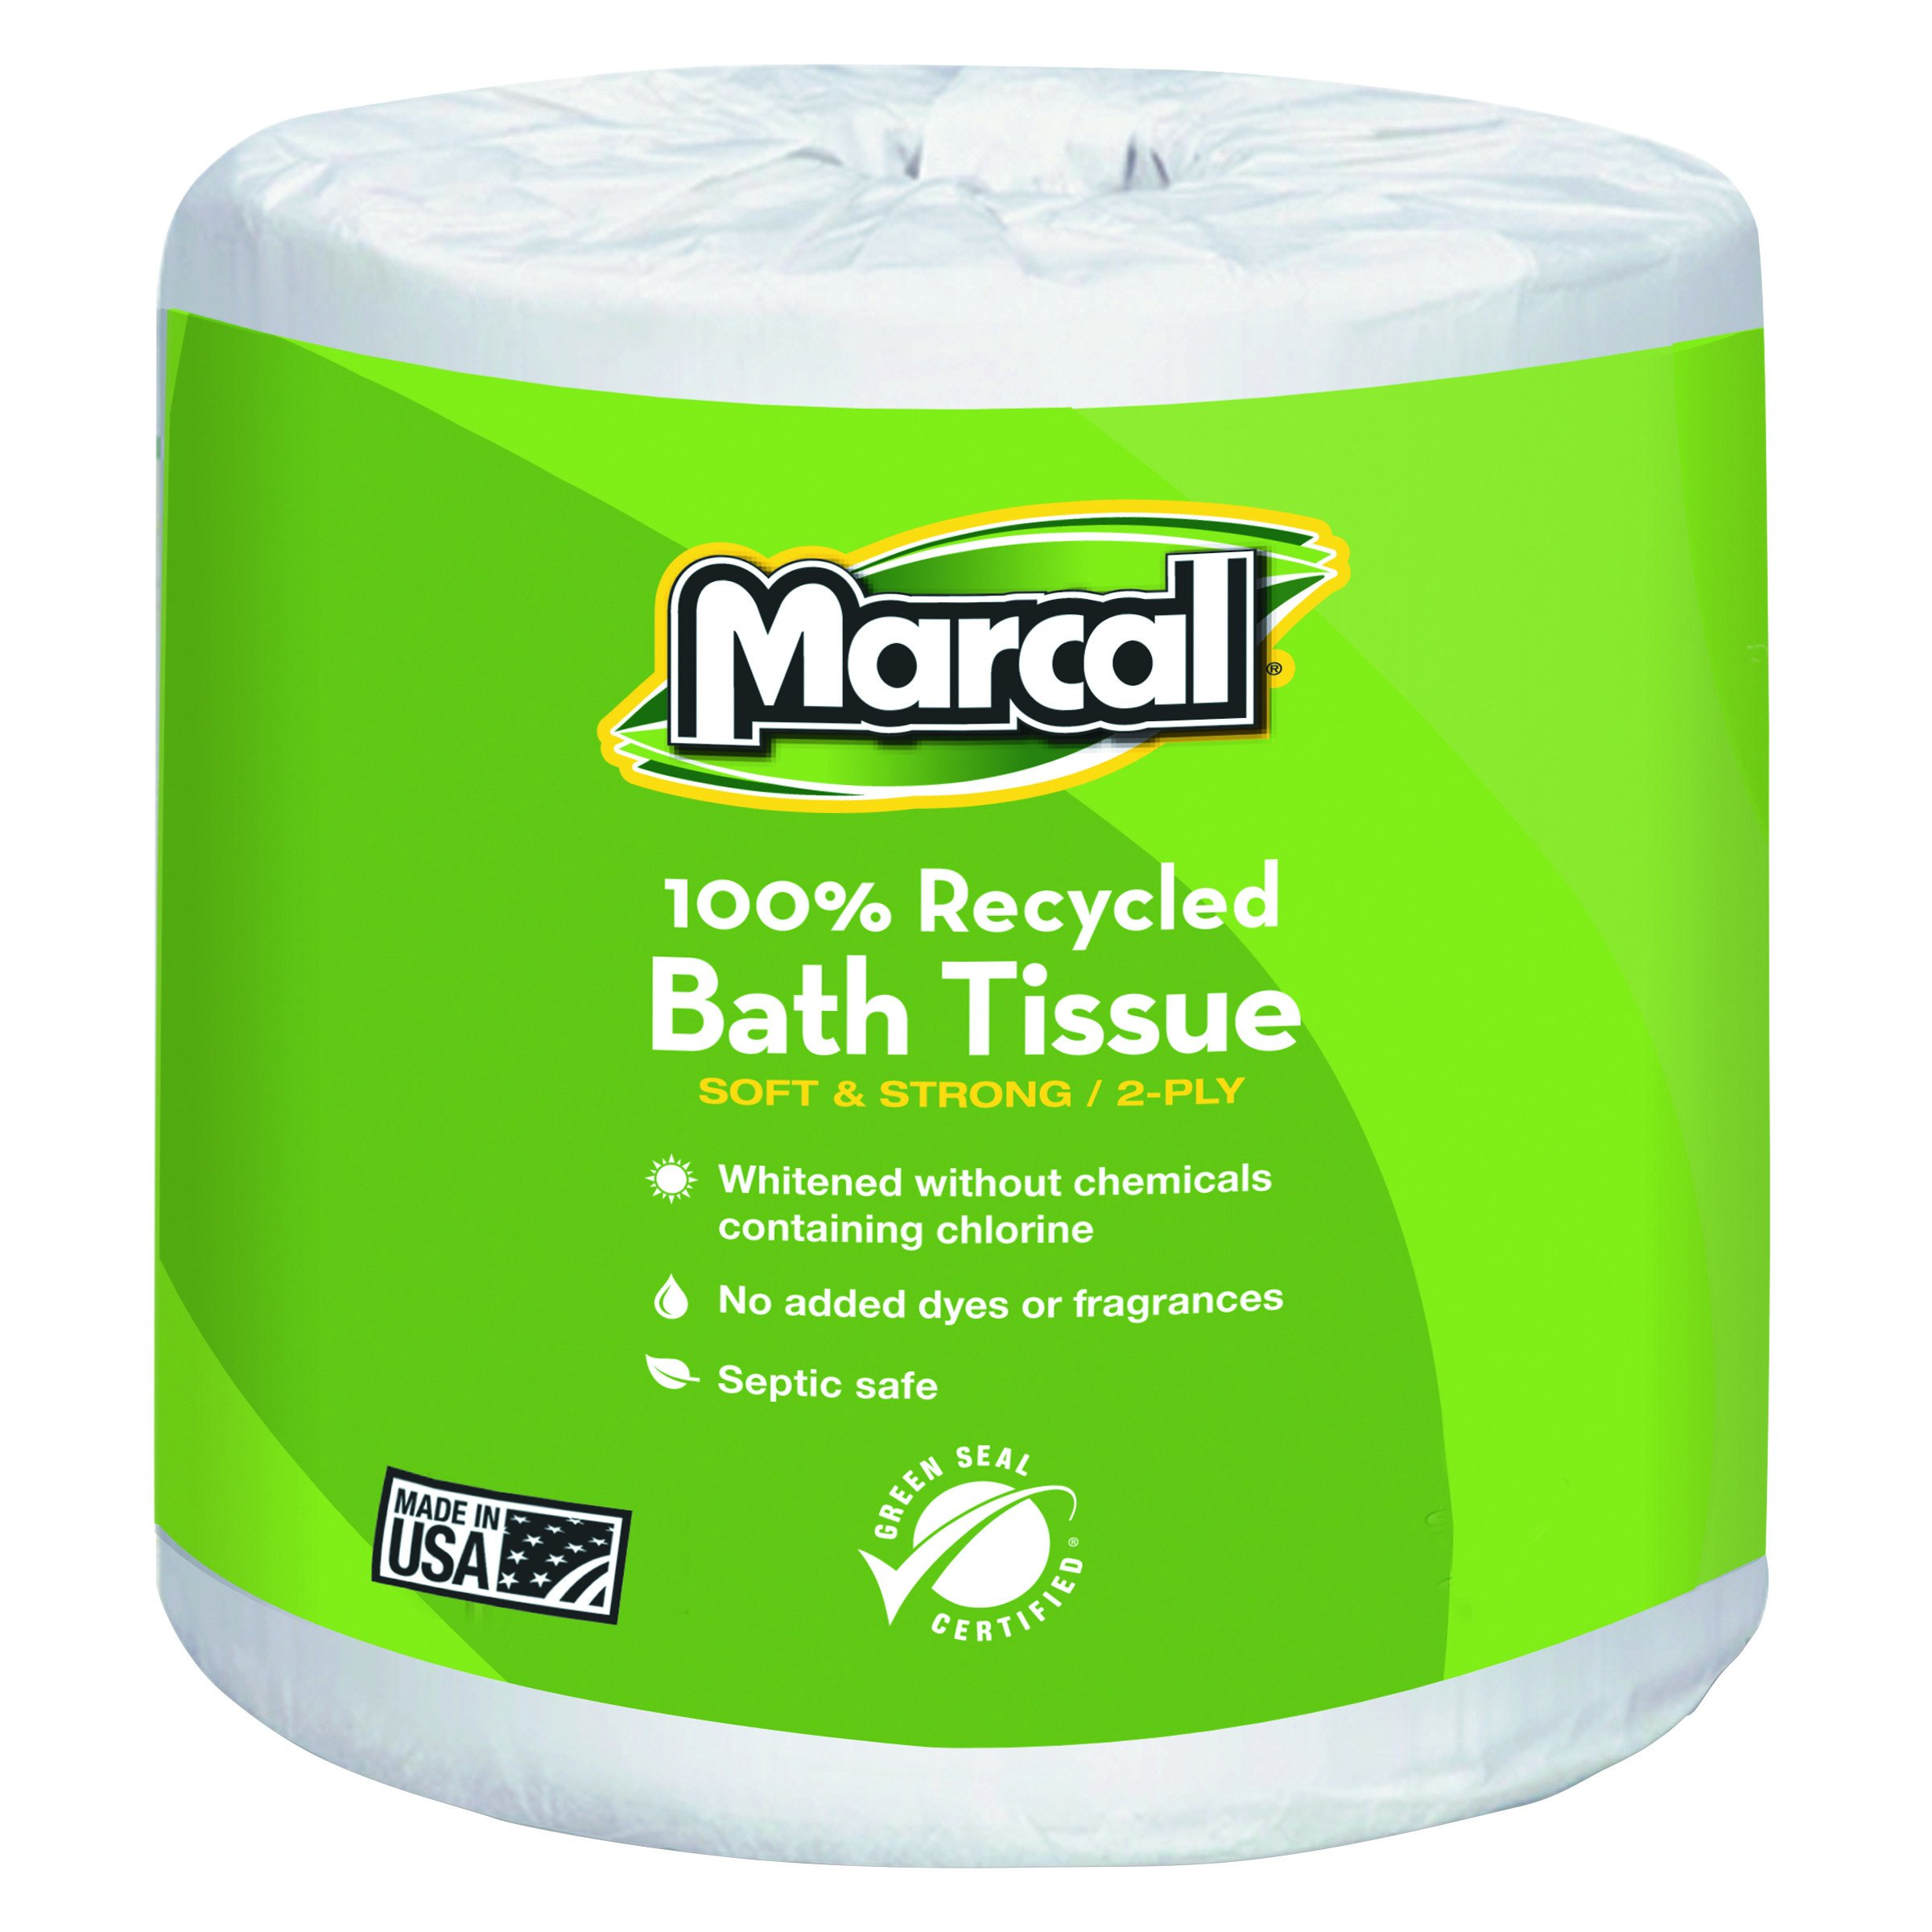 Marcal Toilet Paper 100% Recycled - 2 Ply White Bath Tissue, 336 Sheets Per Roll - 48 Rolls per Case Green Seal Certified Toilet Paper 06079